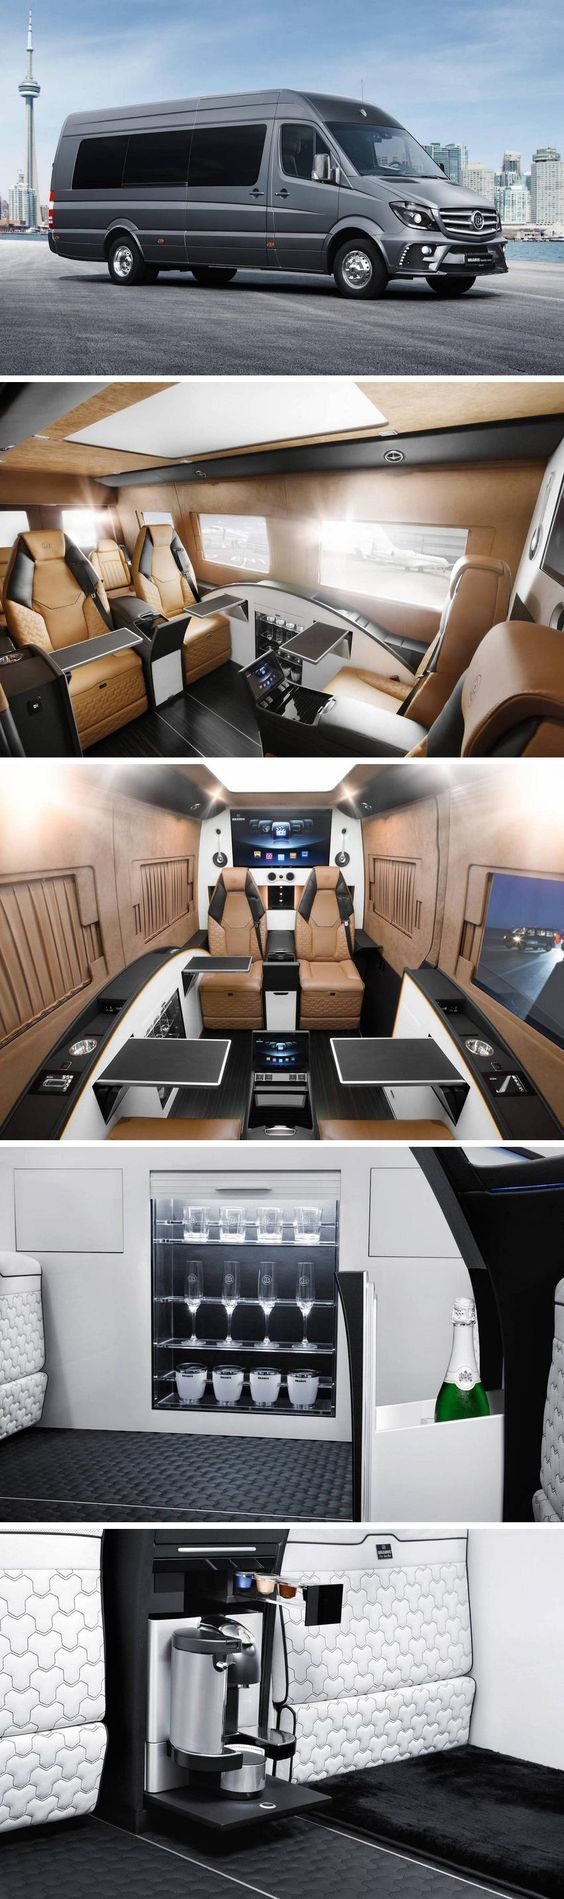 Mercedes benz sprinter 2500 crew luxury van custom grill picture luxury pinterest luxury van benz sprinter and mercedes benz